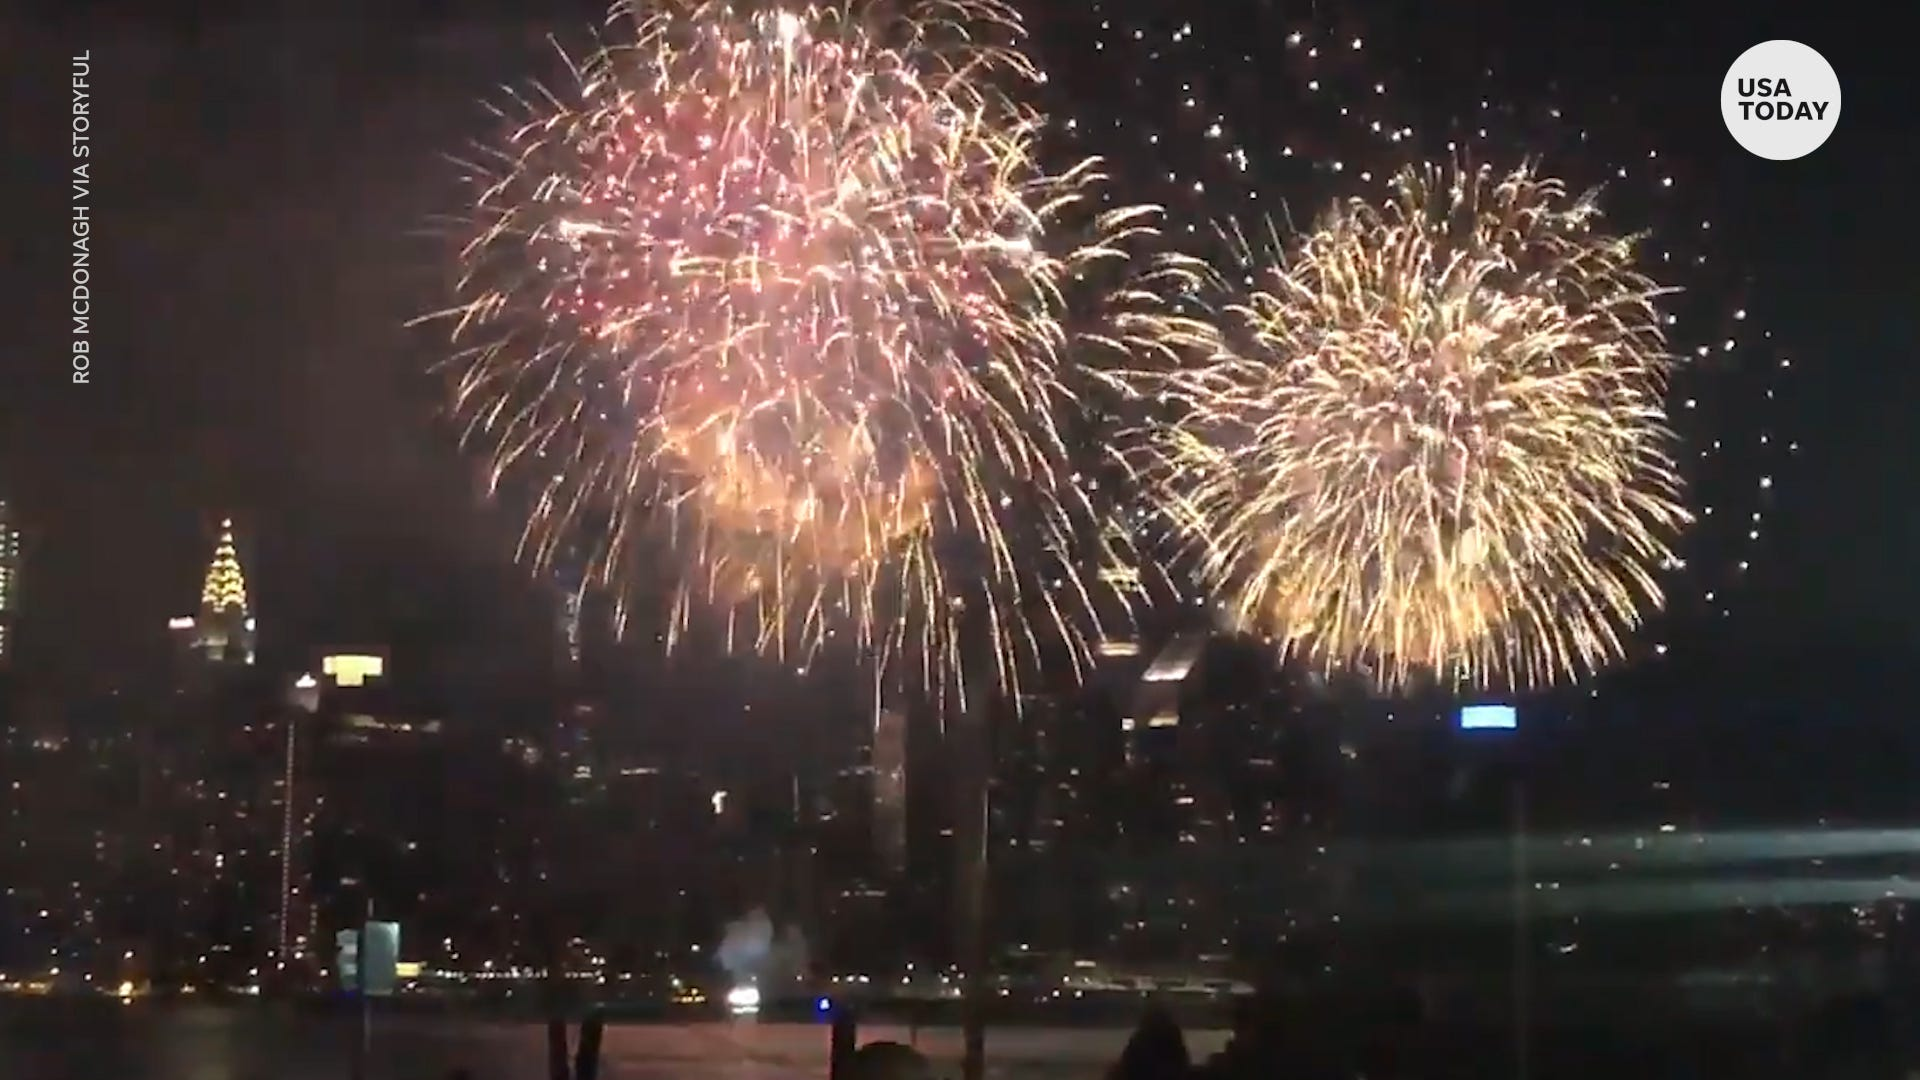 Fourth of July fireworks came early to New York thanks to Macy s secret displays